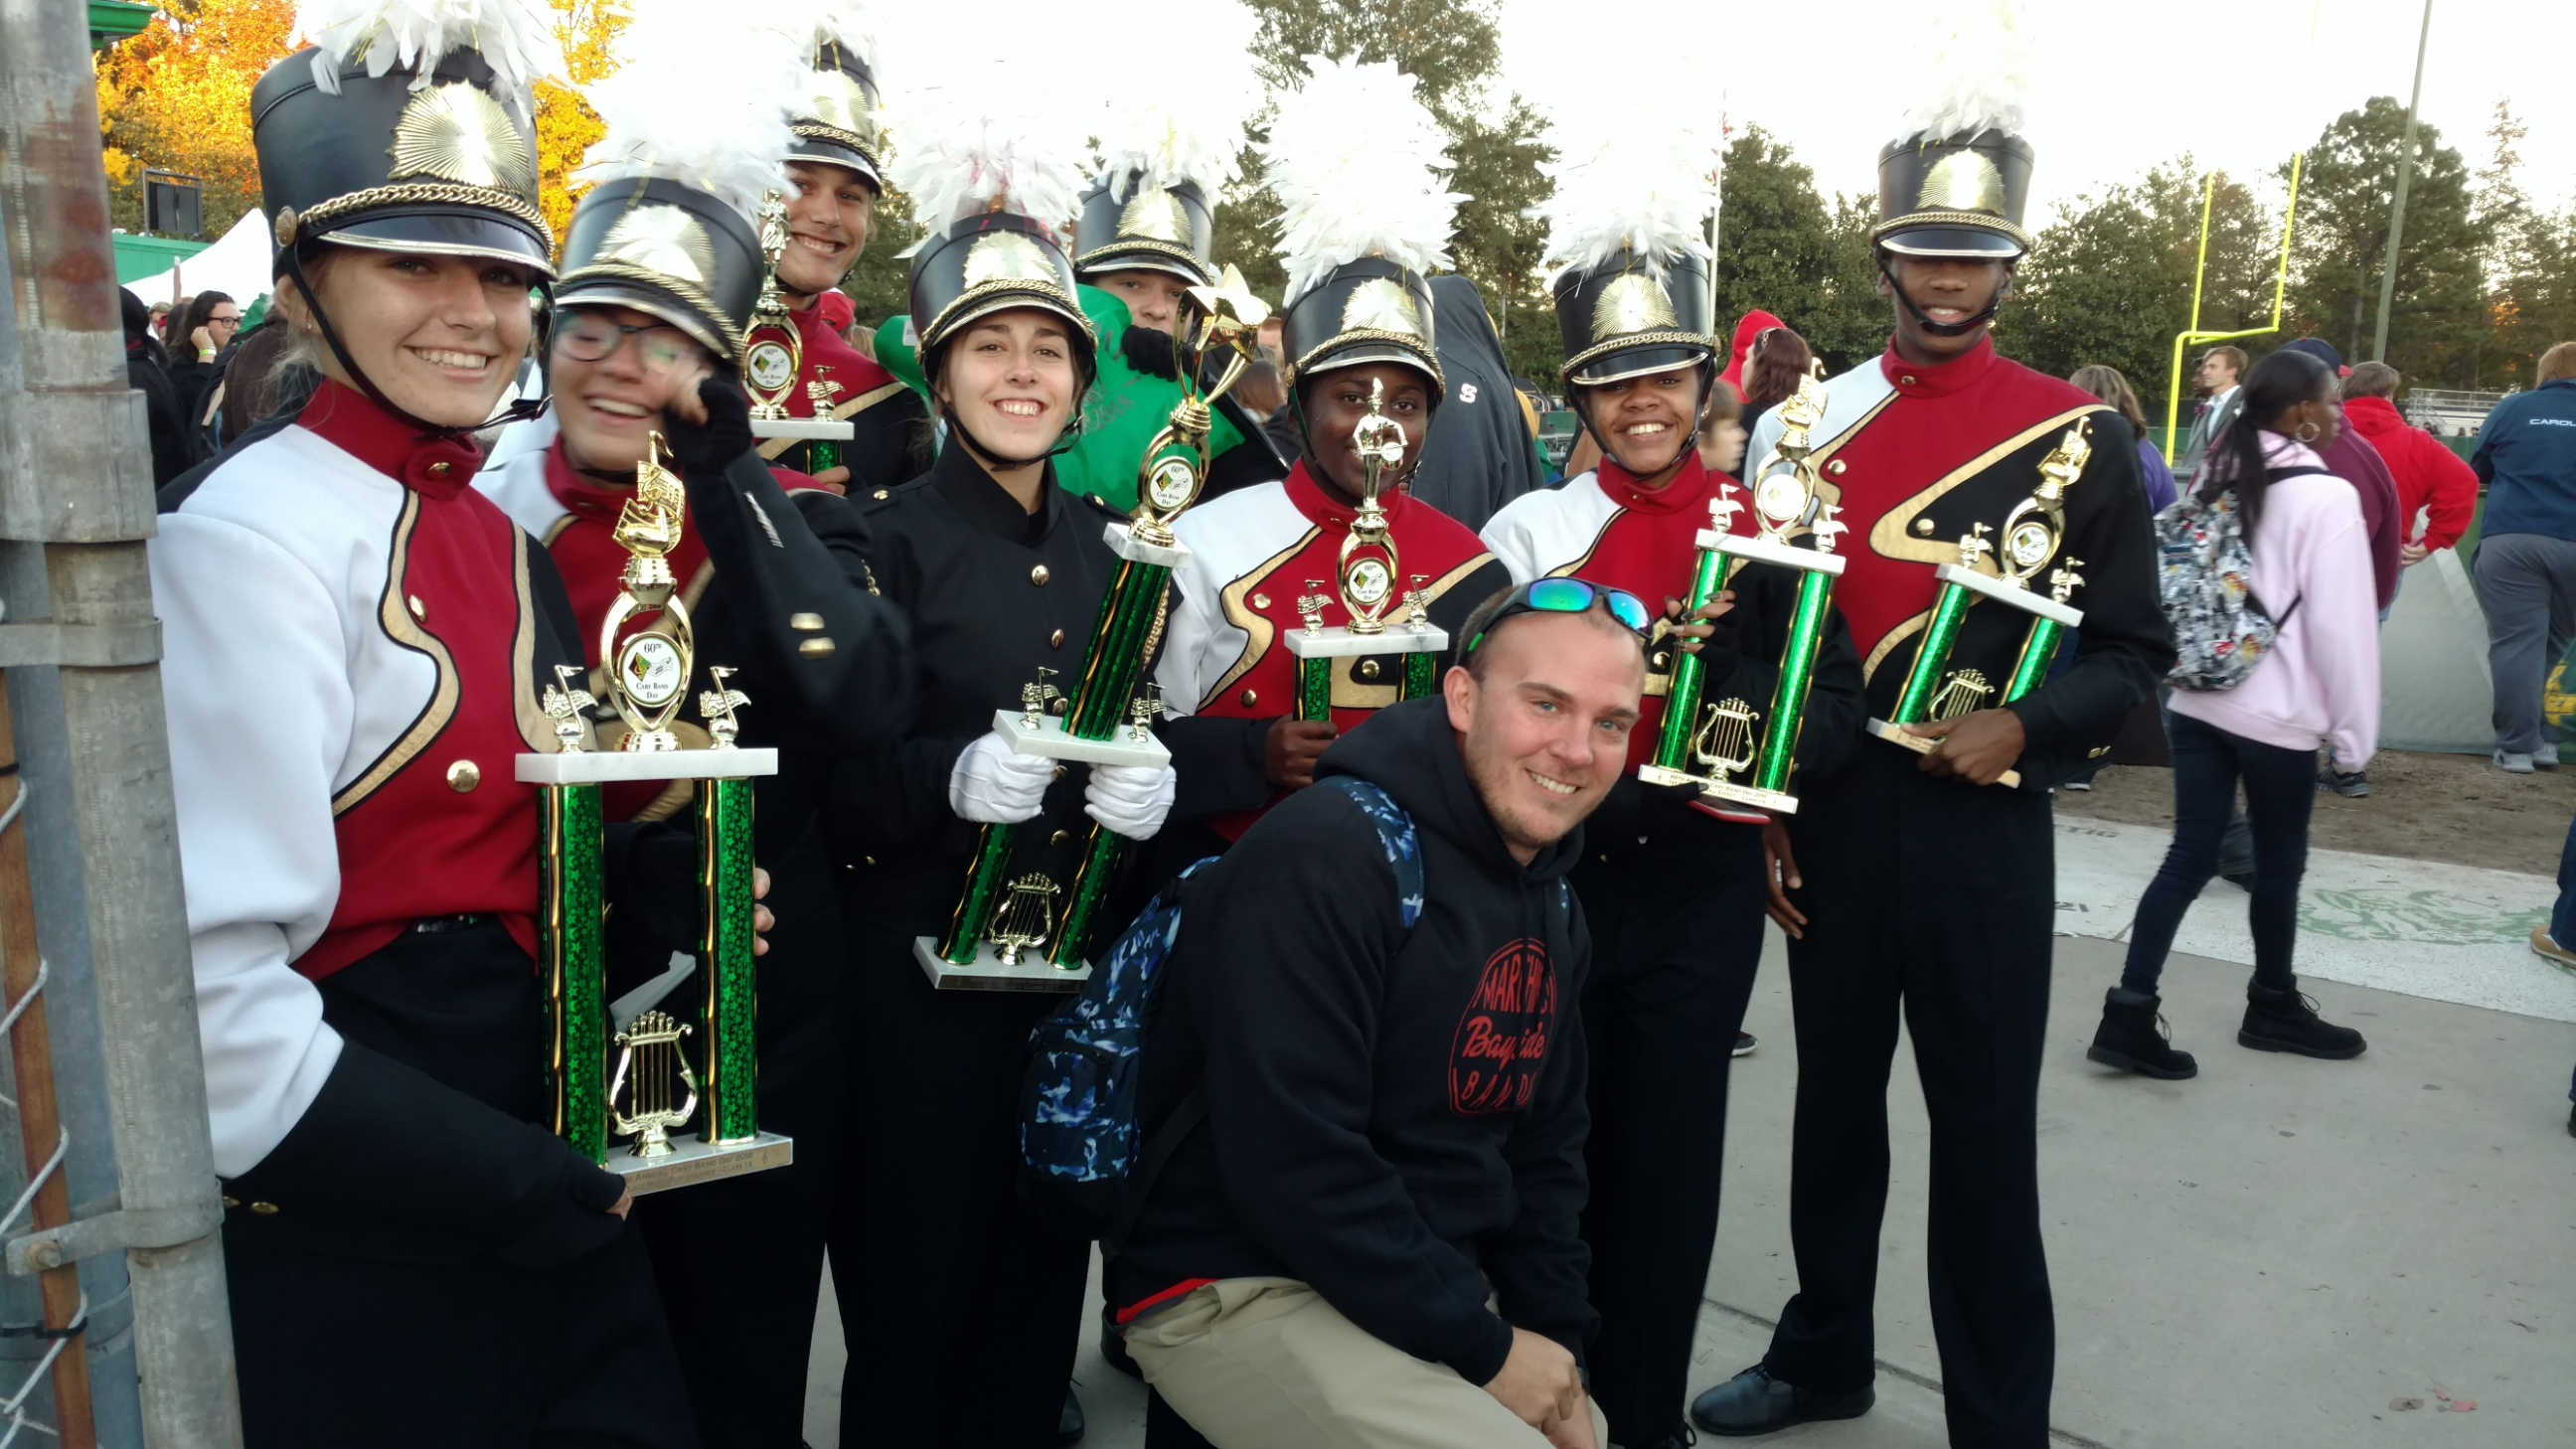 Bayside HS, Cary Band Day